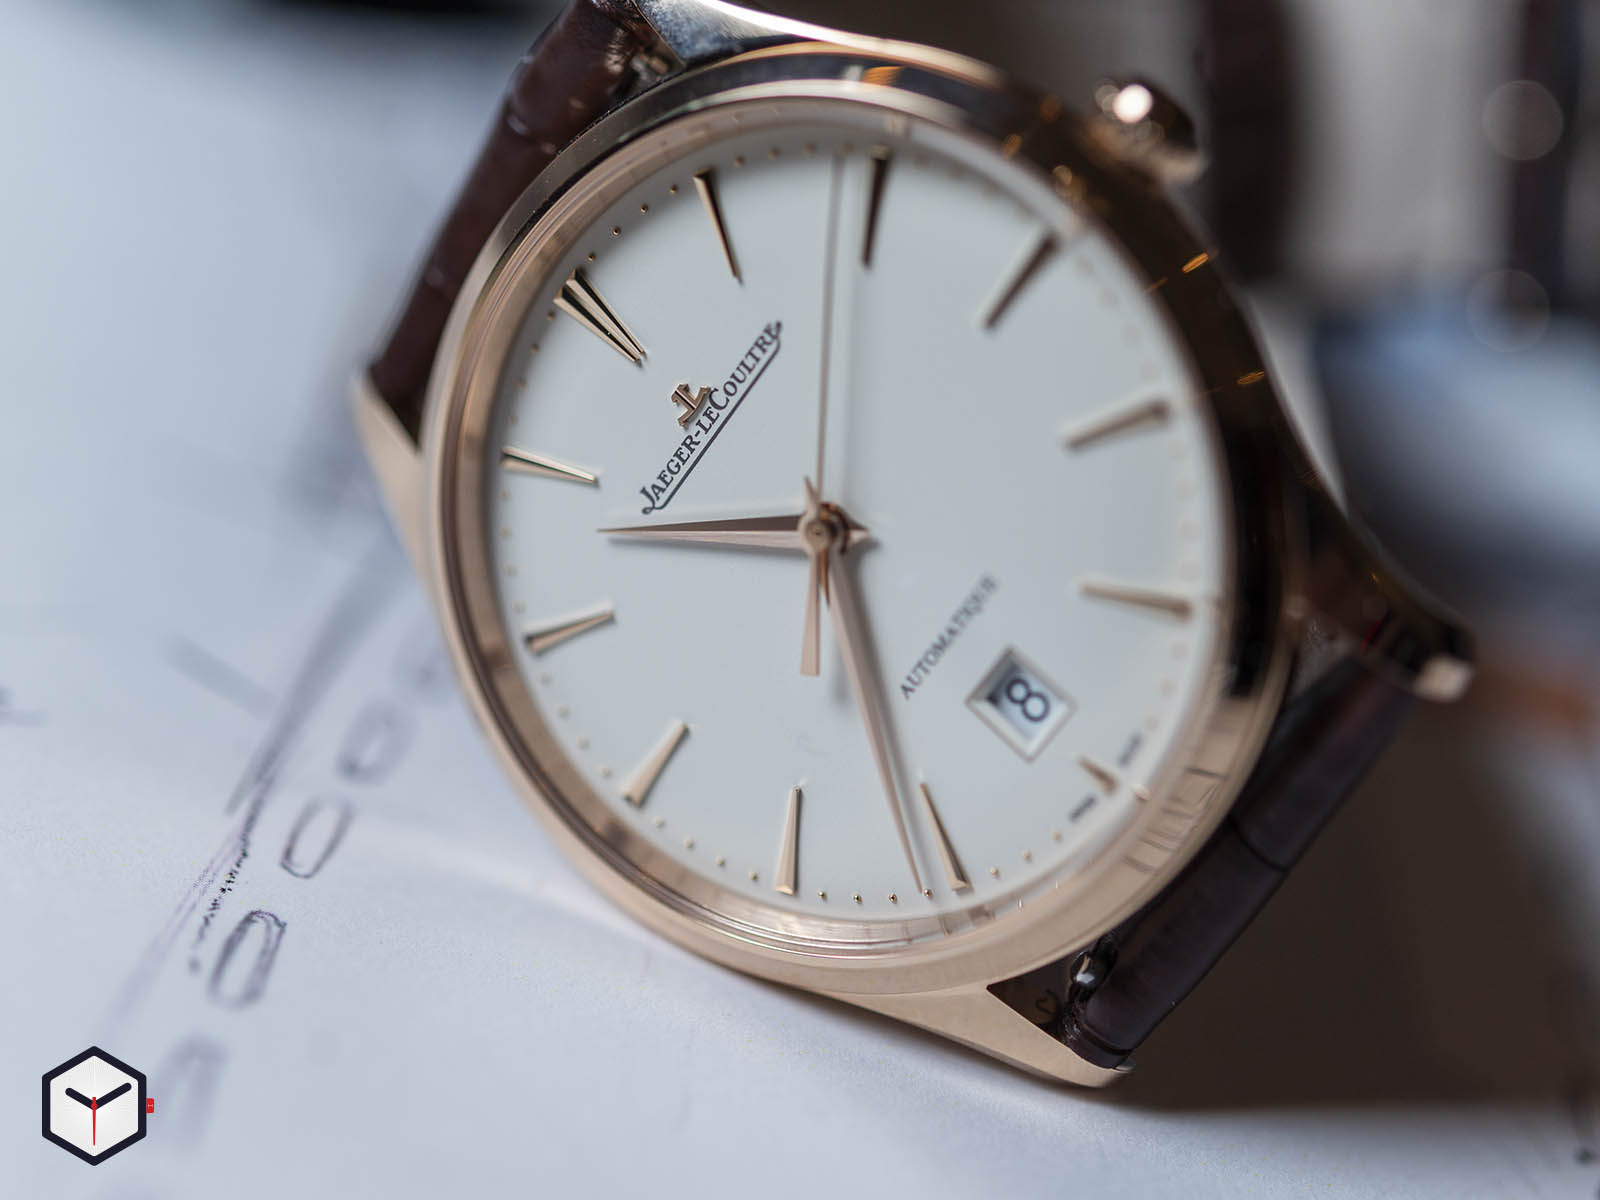 1232510-jaeger-lecoultre-master-ultra-thin-date-sihh-2019-2.jpg